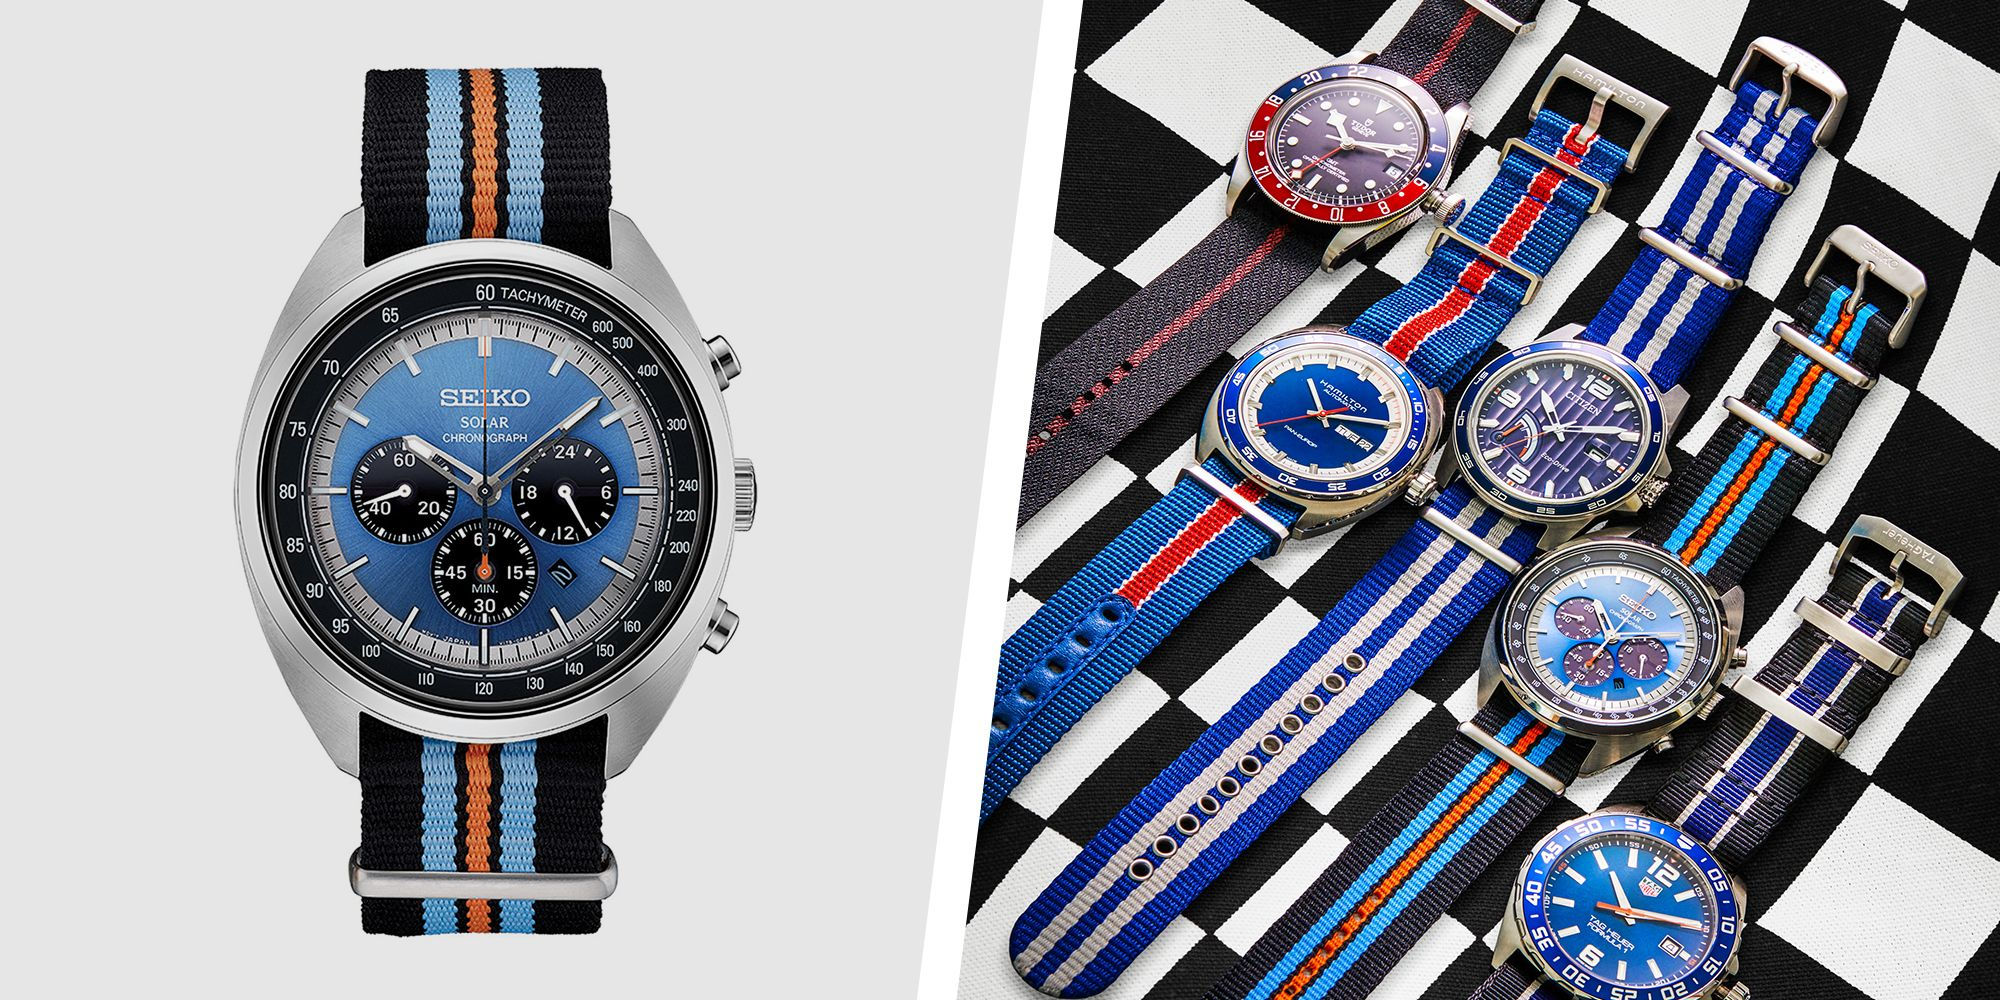 8 Racing-Inspired Watches to Test Drive This Spring